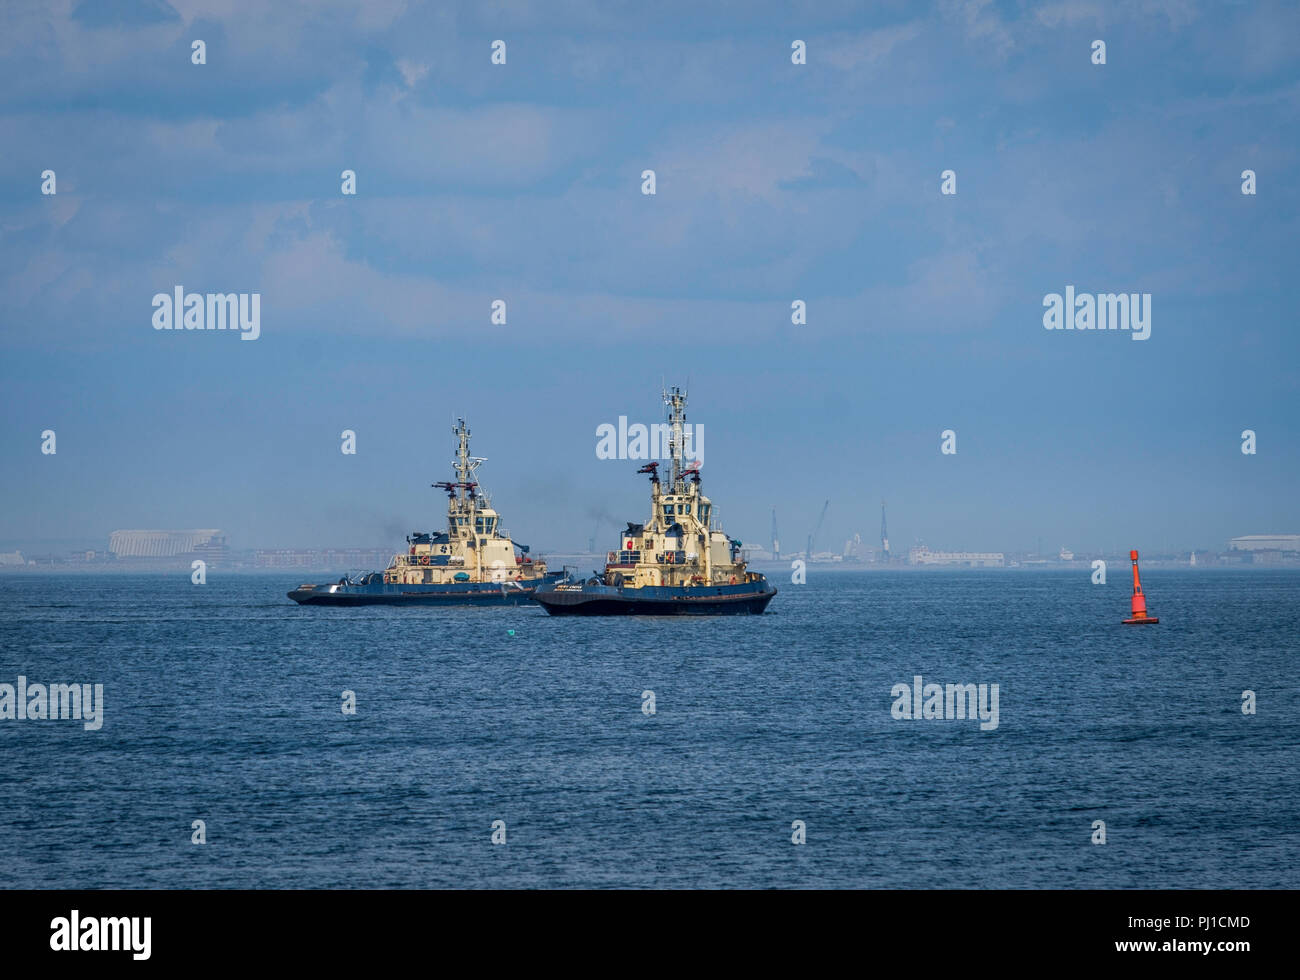 Tugs set out of the Tees to bring in a ship. - Stock Image